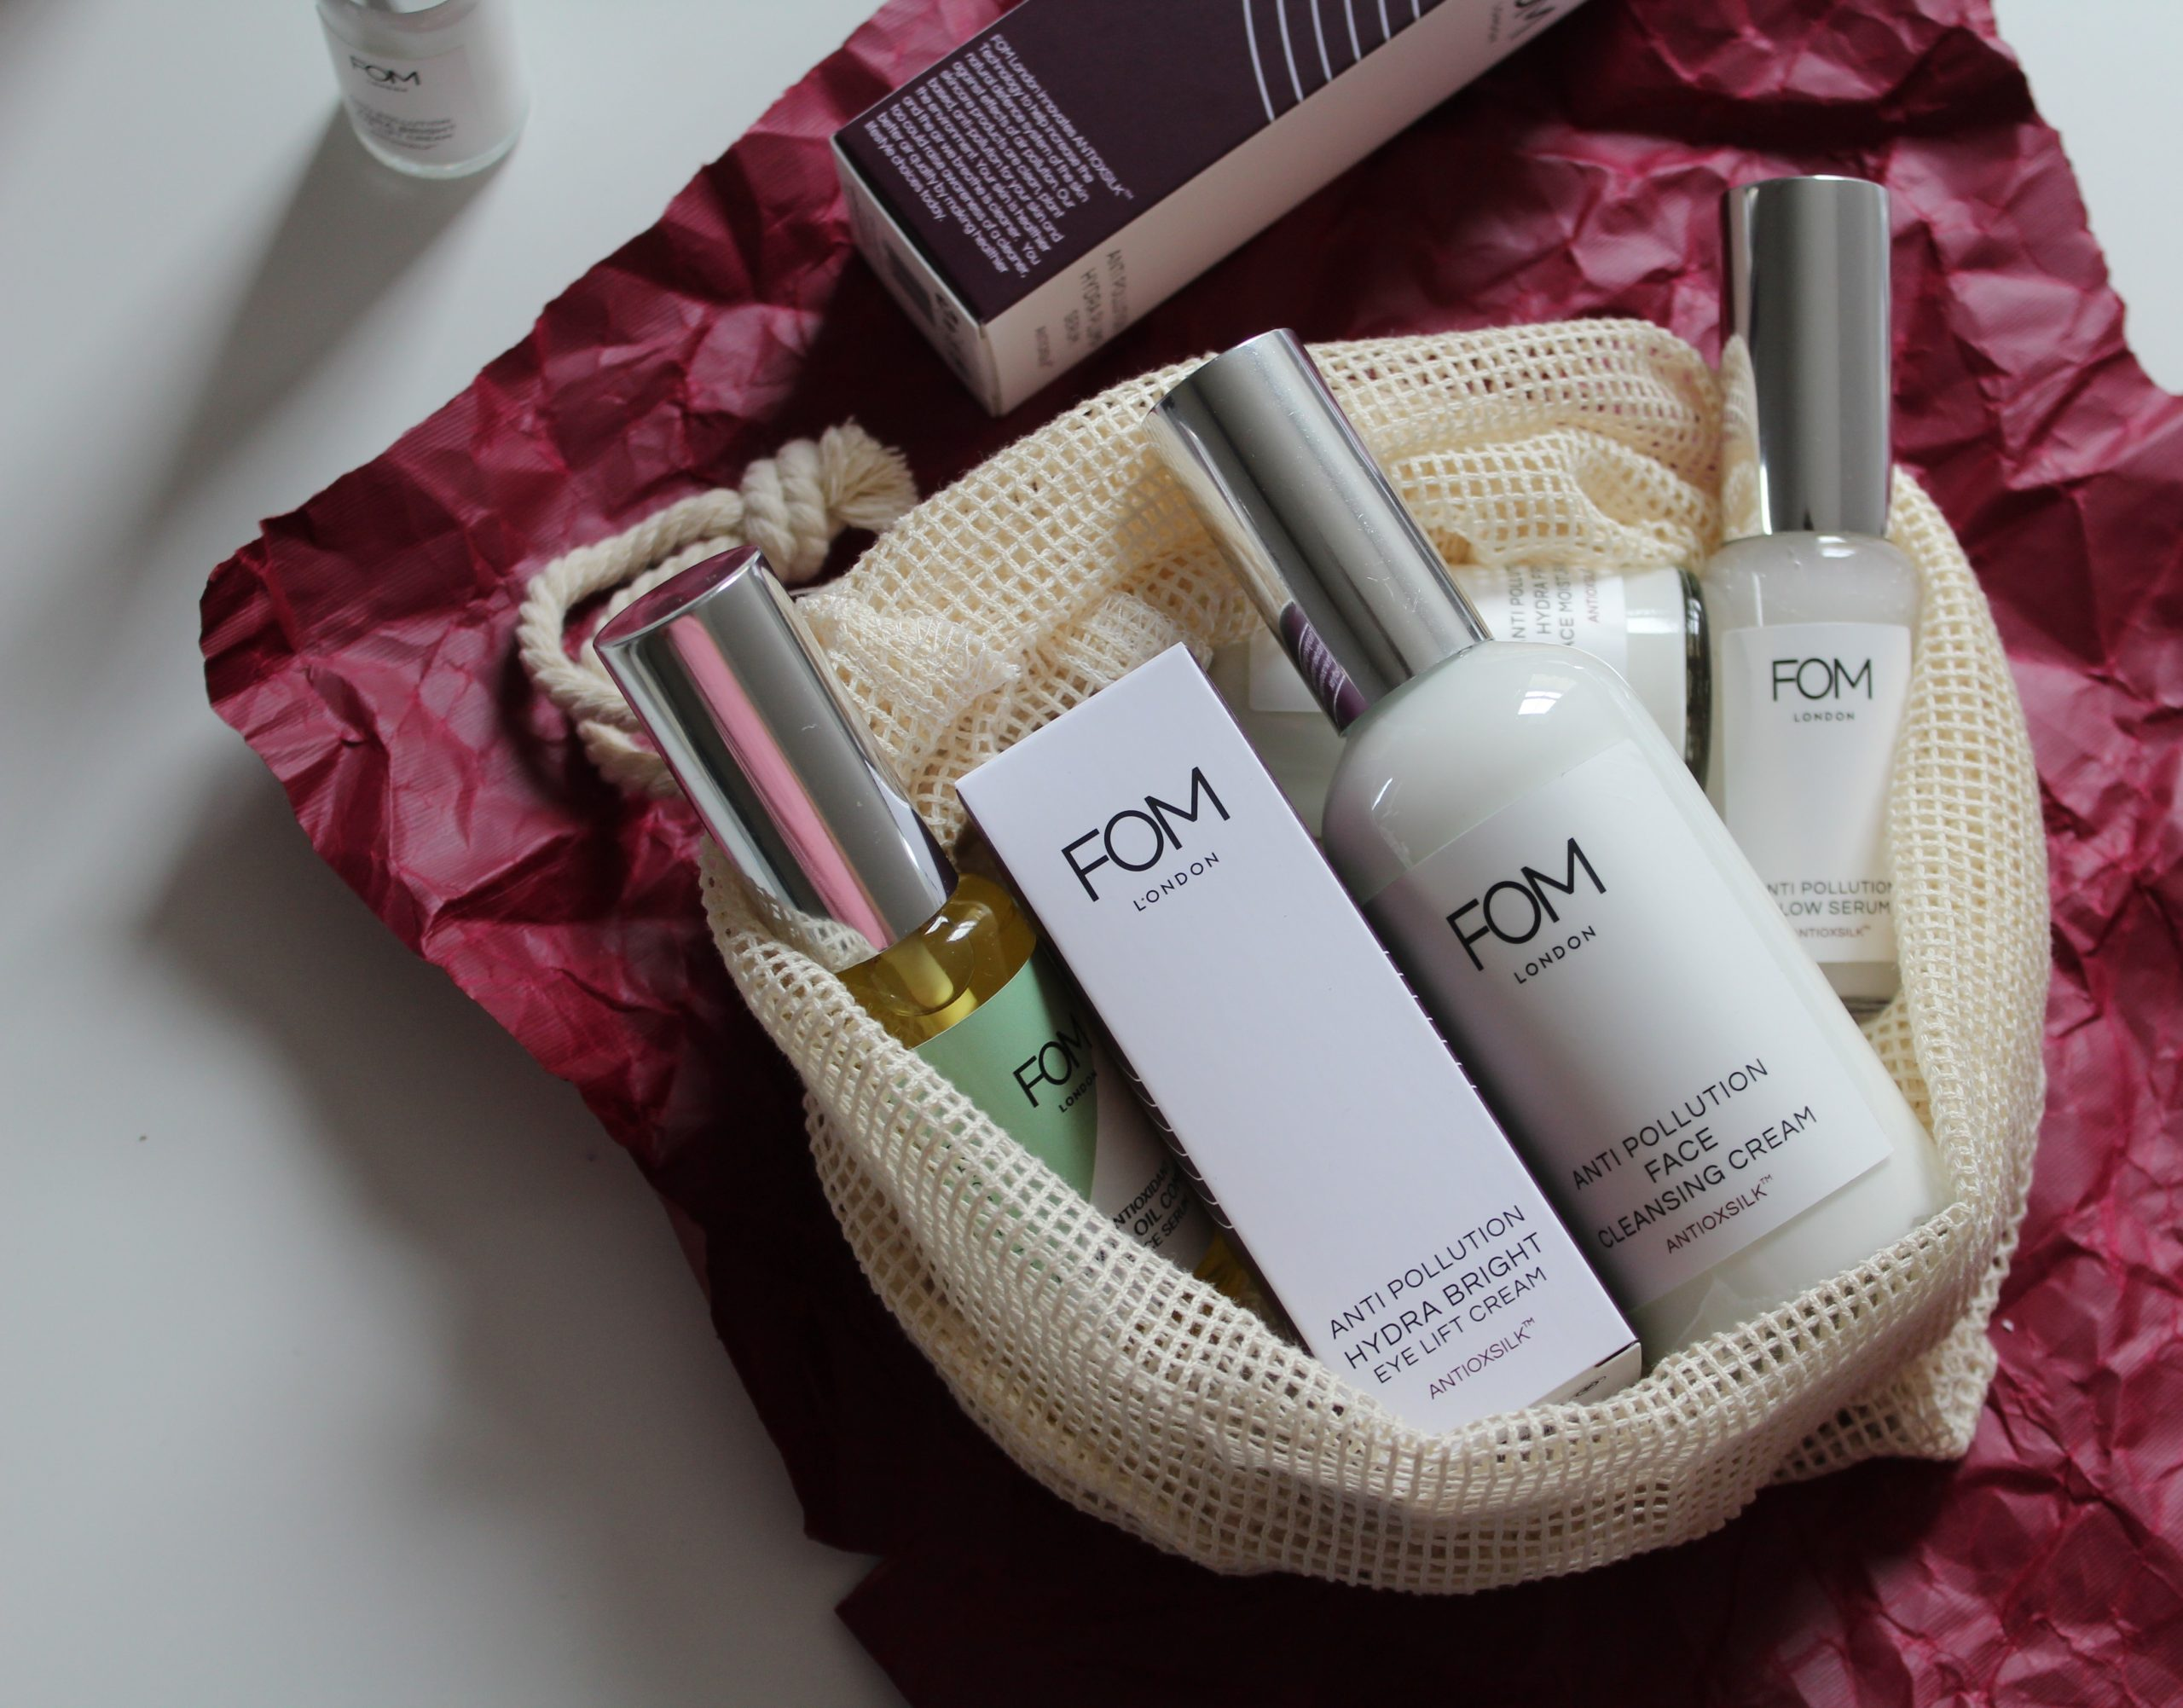 FOM London skincare products